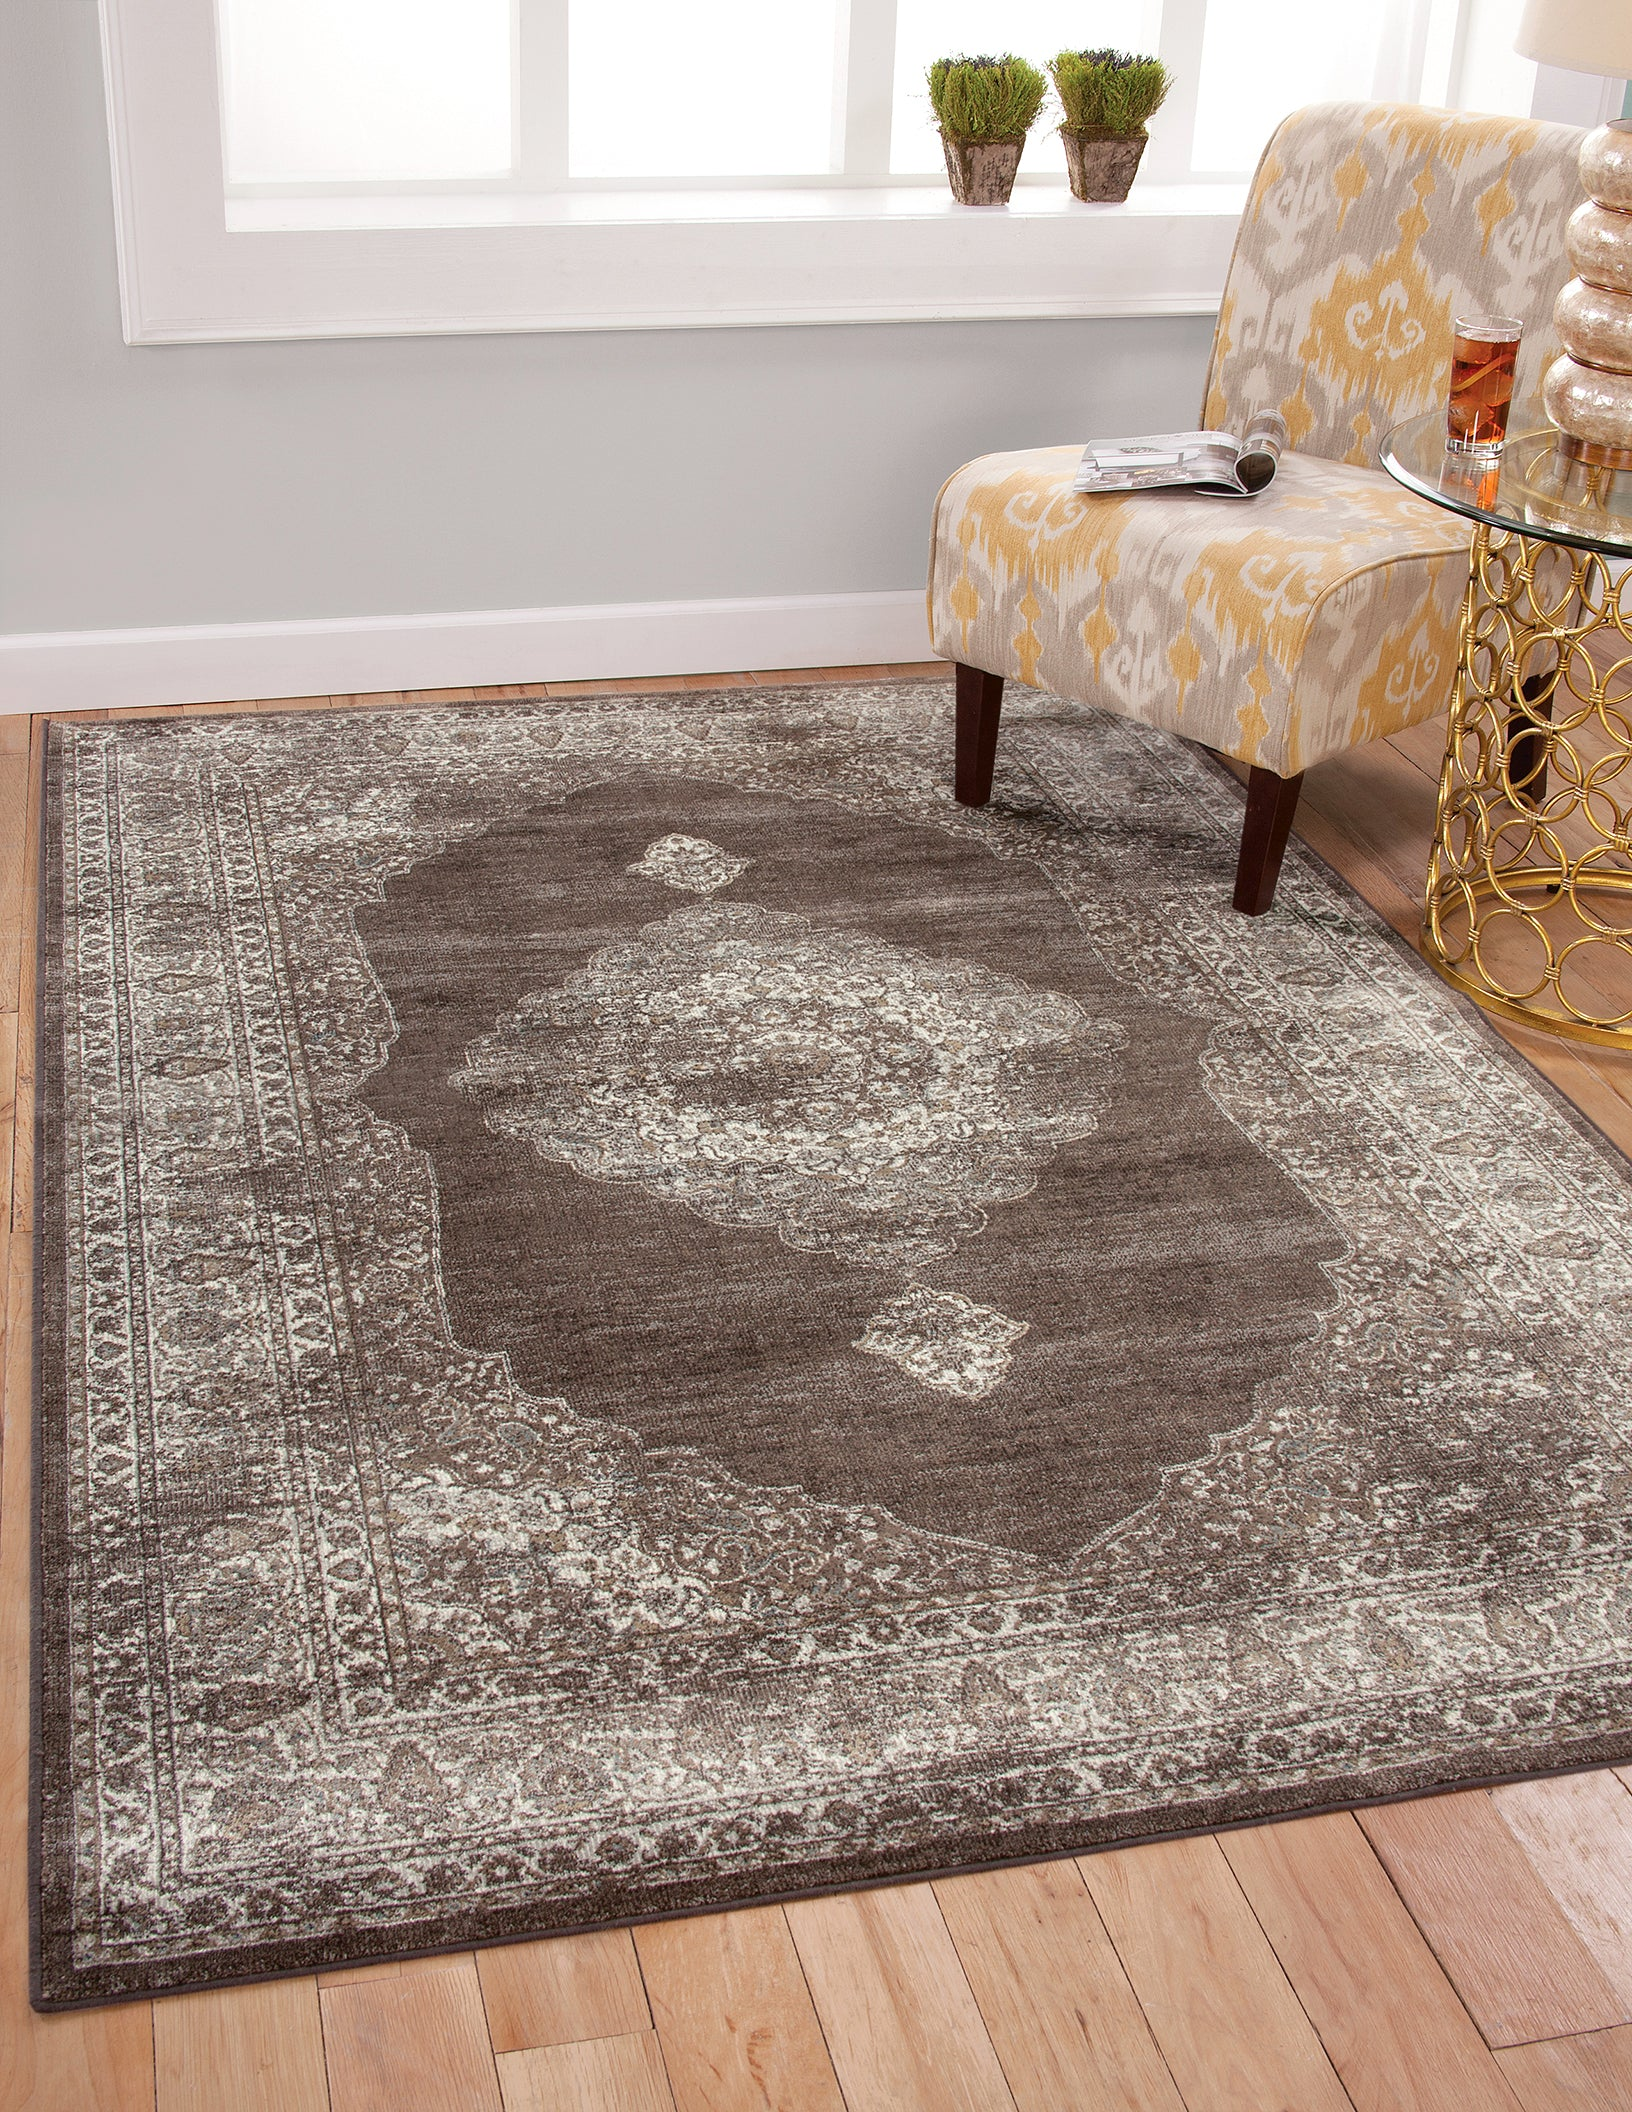 Faded Gray Worn Overdyed Style Persian Rug